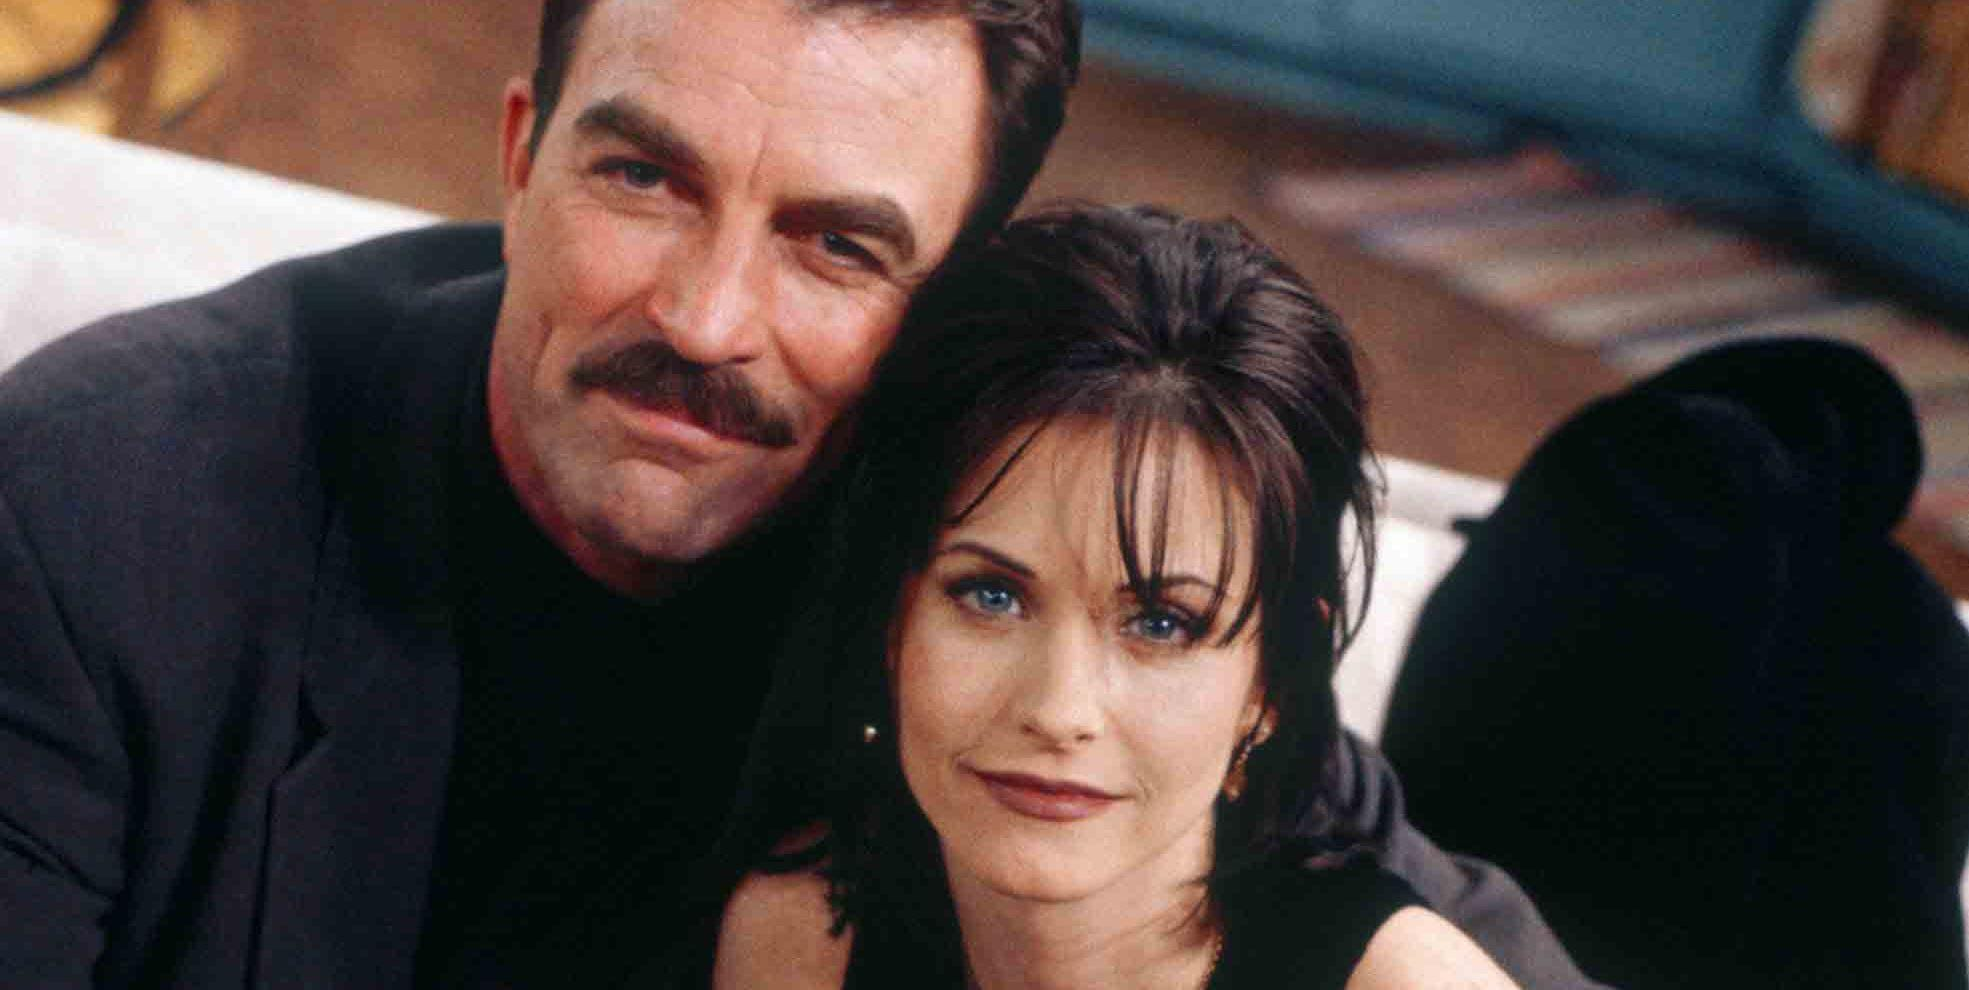 Why Monica And Richard Break-up in The FRIENDS Show?